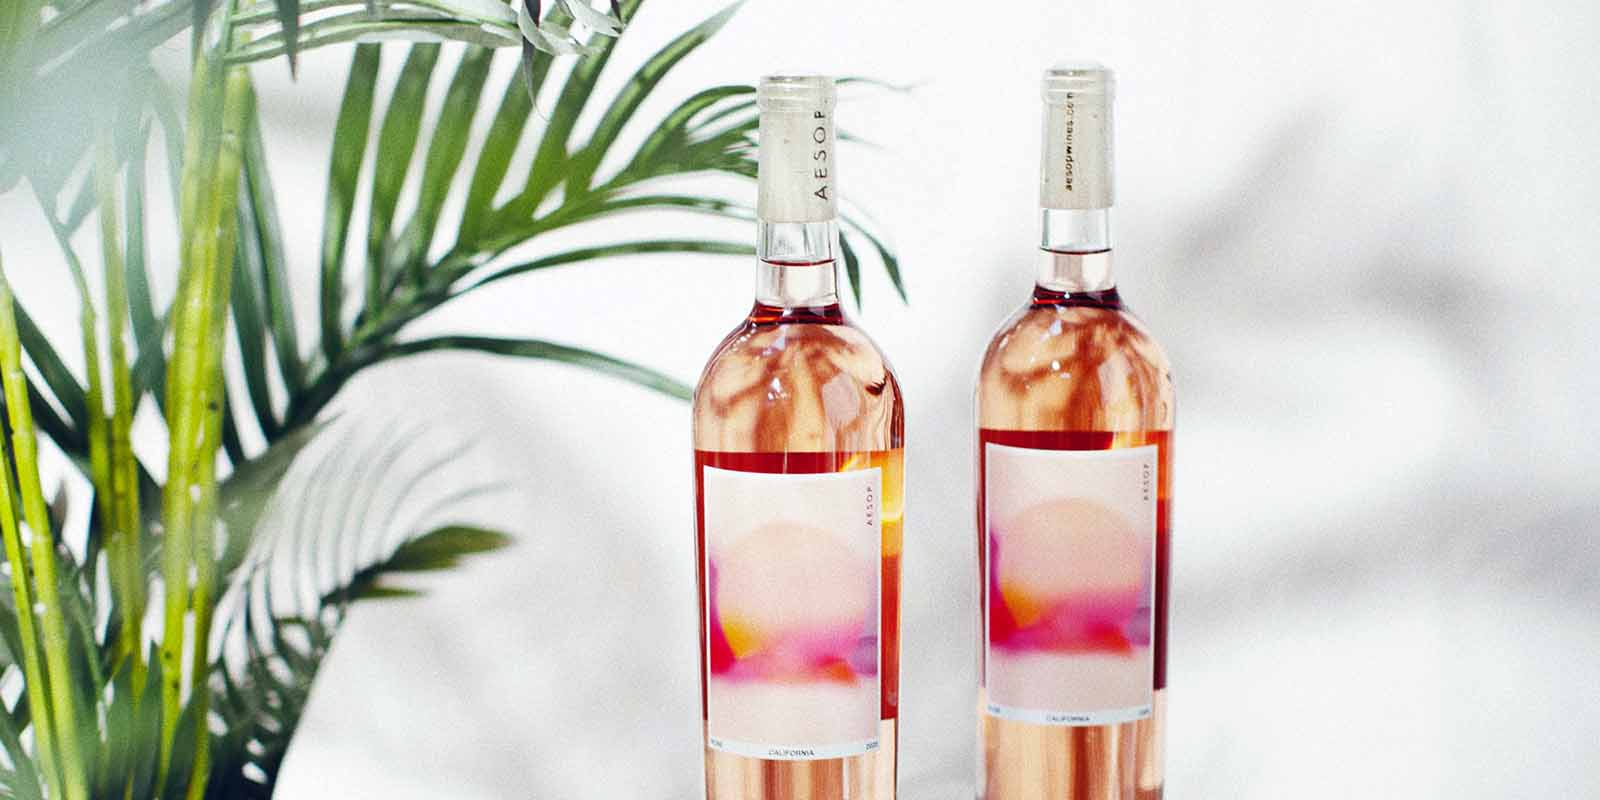 Two wine bottles in front of a palm plant